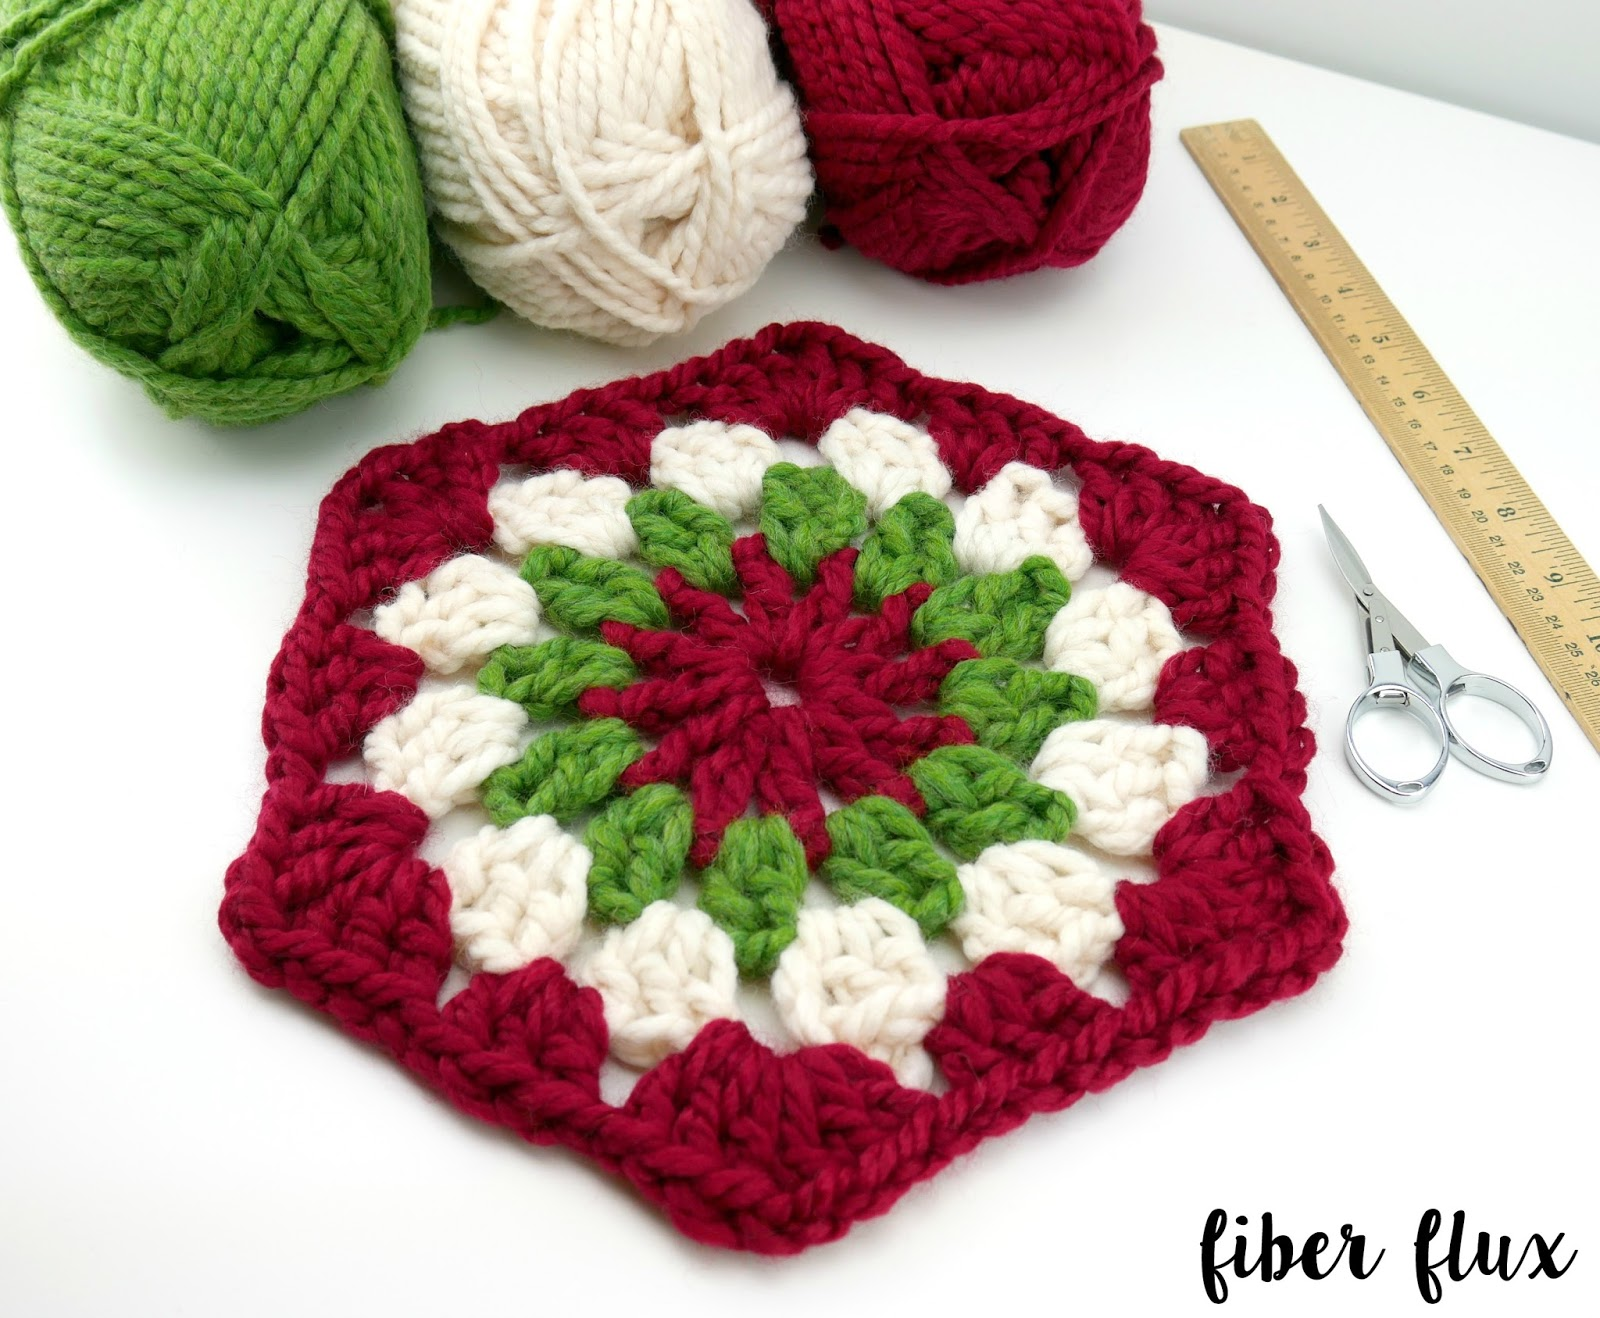 Fiber Flux 2016 Fiber Flux Holiday Cal Week 2 The Granny Hexagon